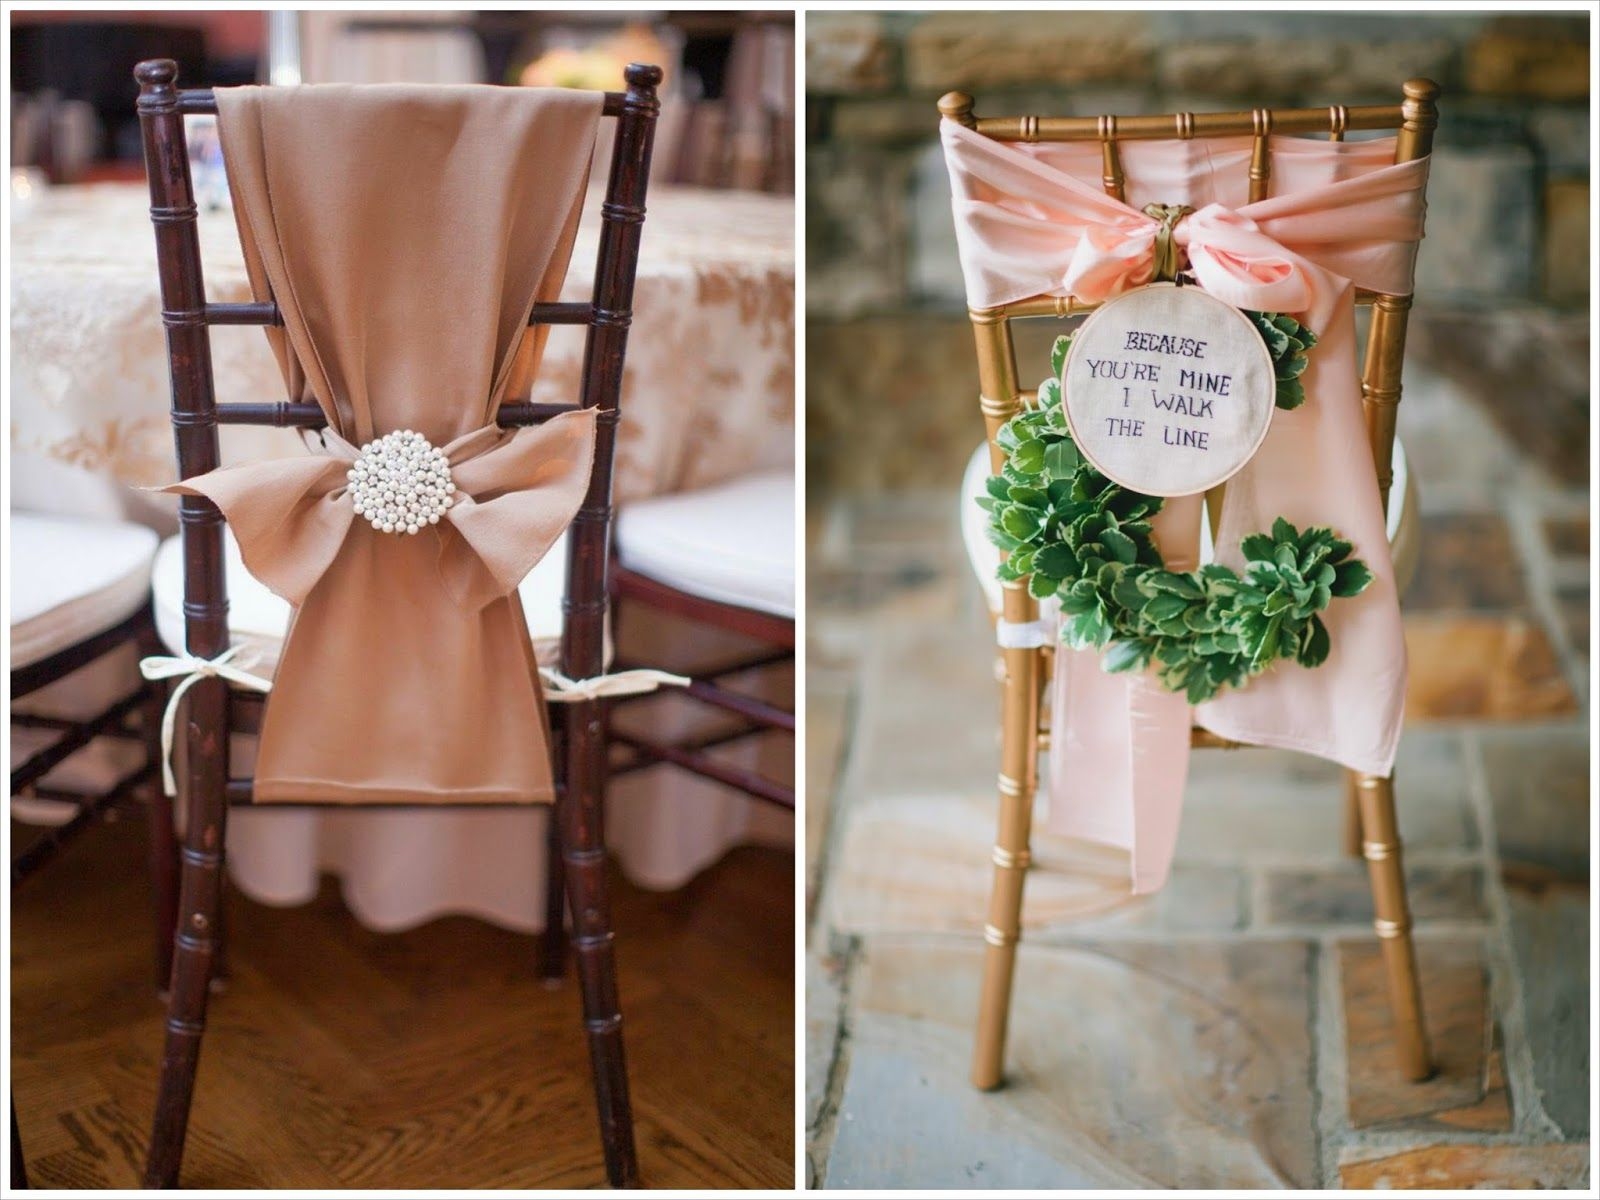 Decoracion Sillas Boda Sillas Decoradas Con Telas Boda Pinterest Sillas